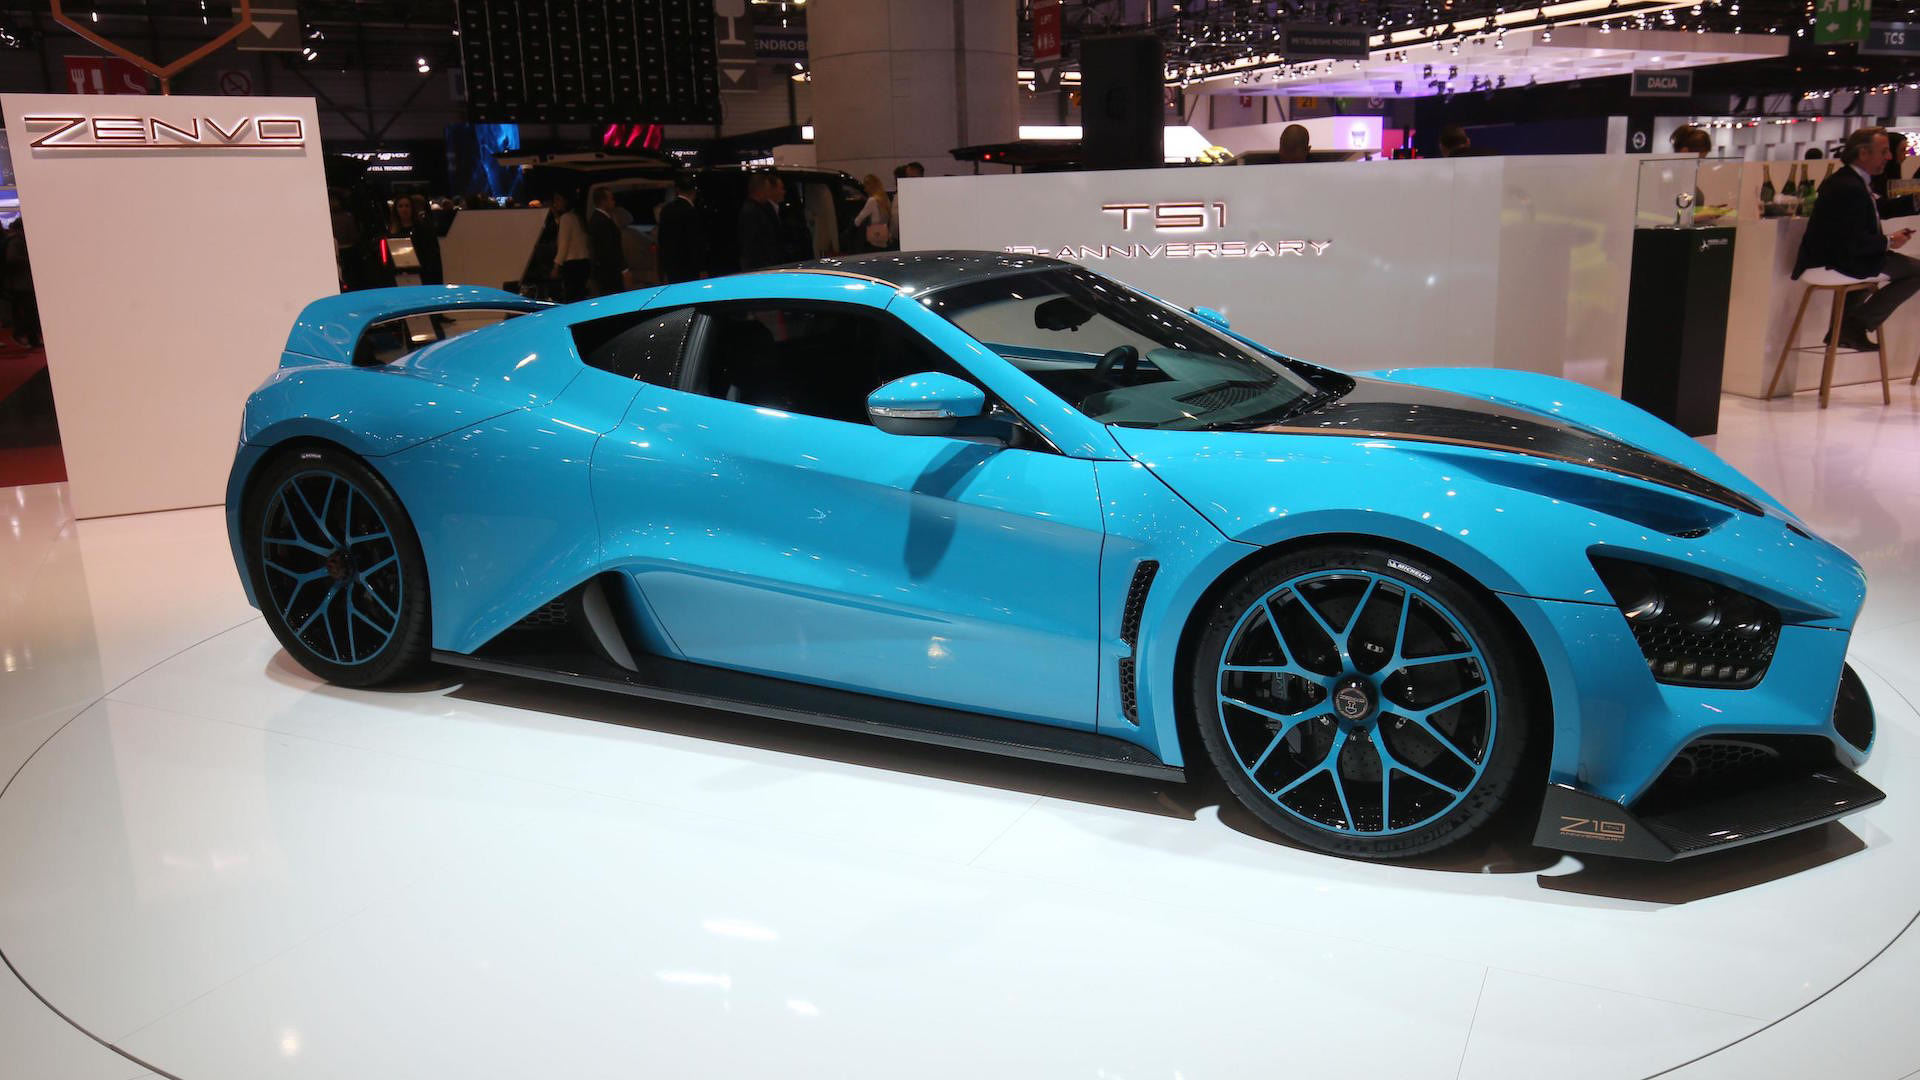 Zenvo Gt Has Hp Costs Million And Is Very Blue